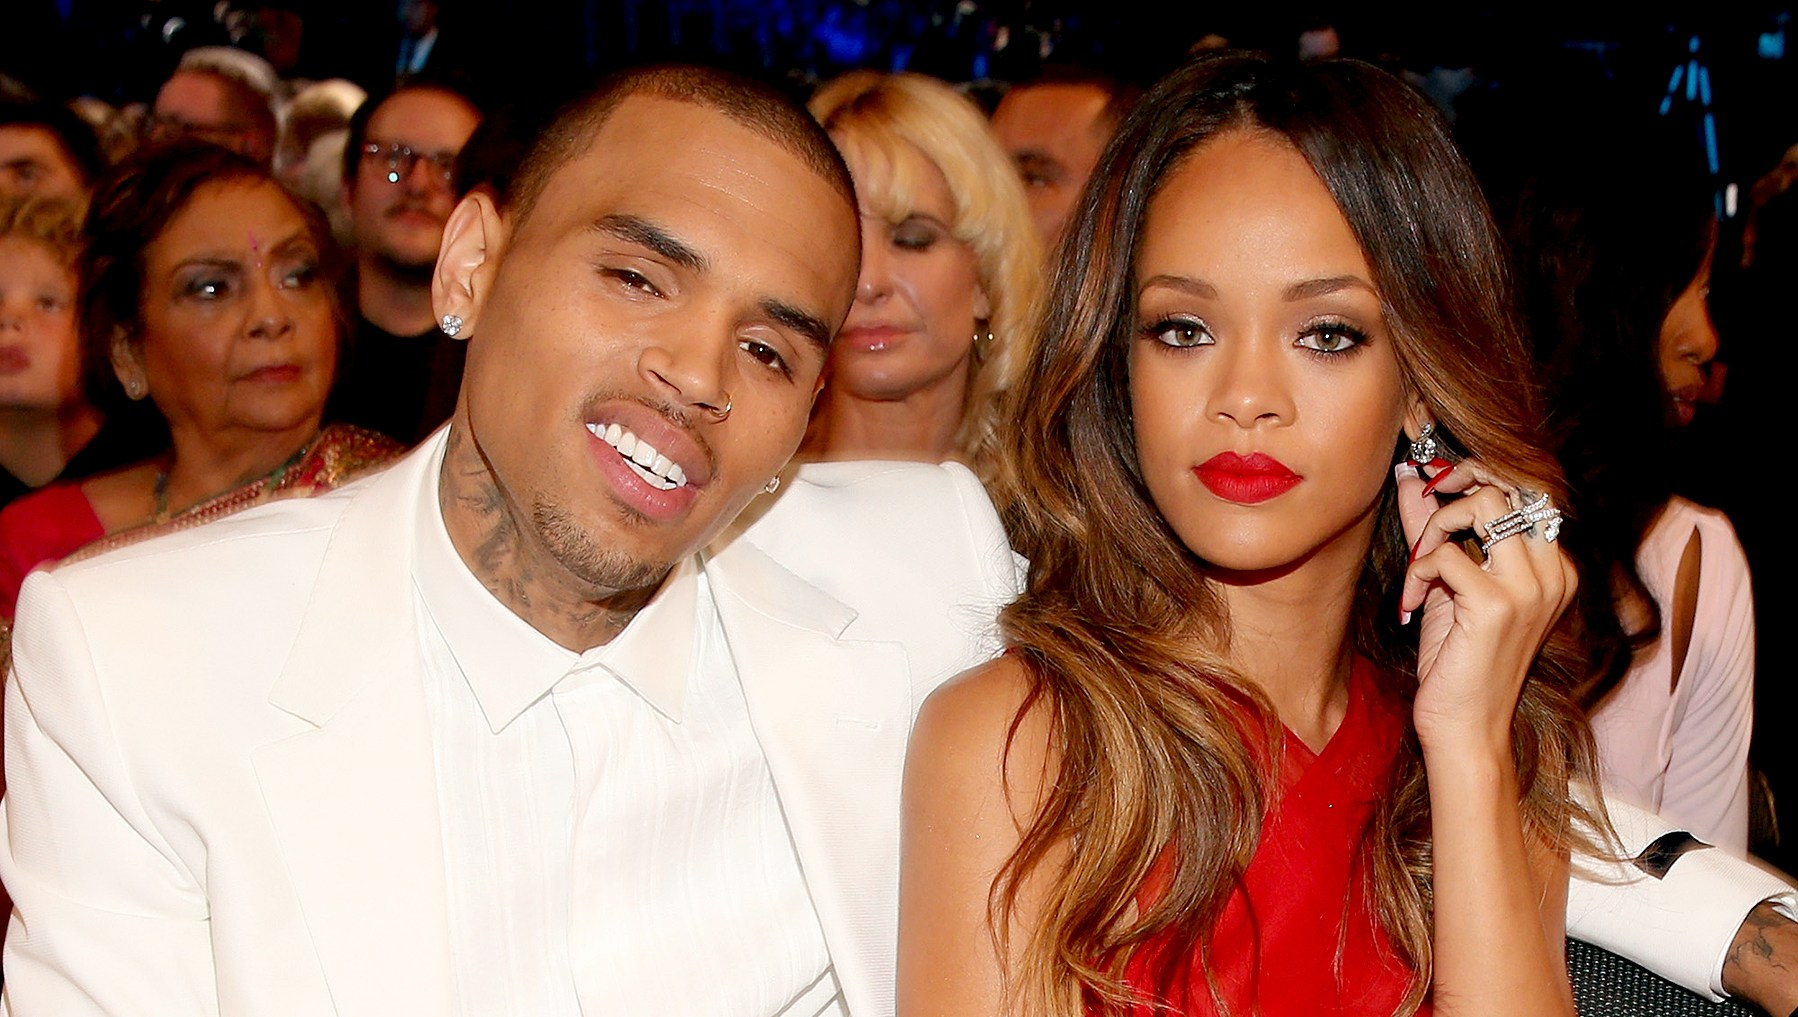 Chris-Brown-and-Rihanna birthday